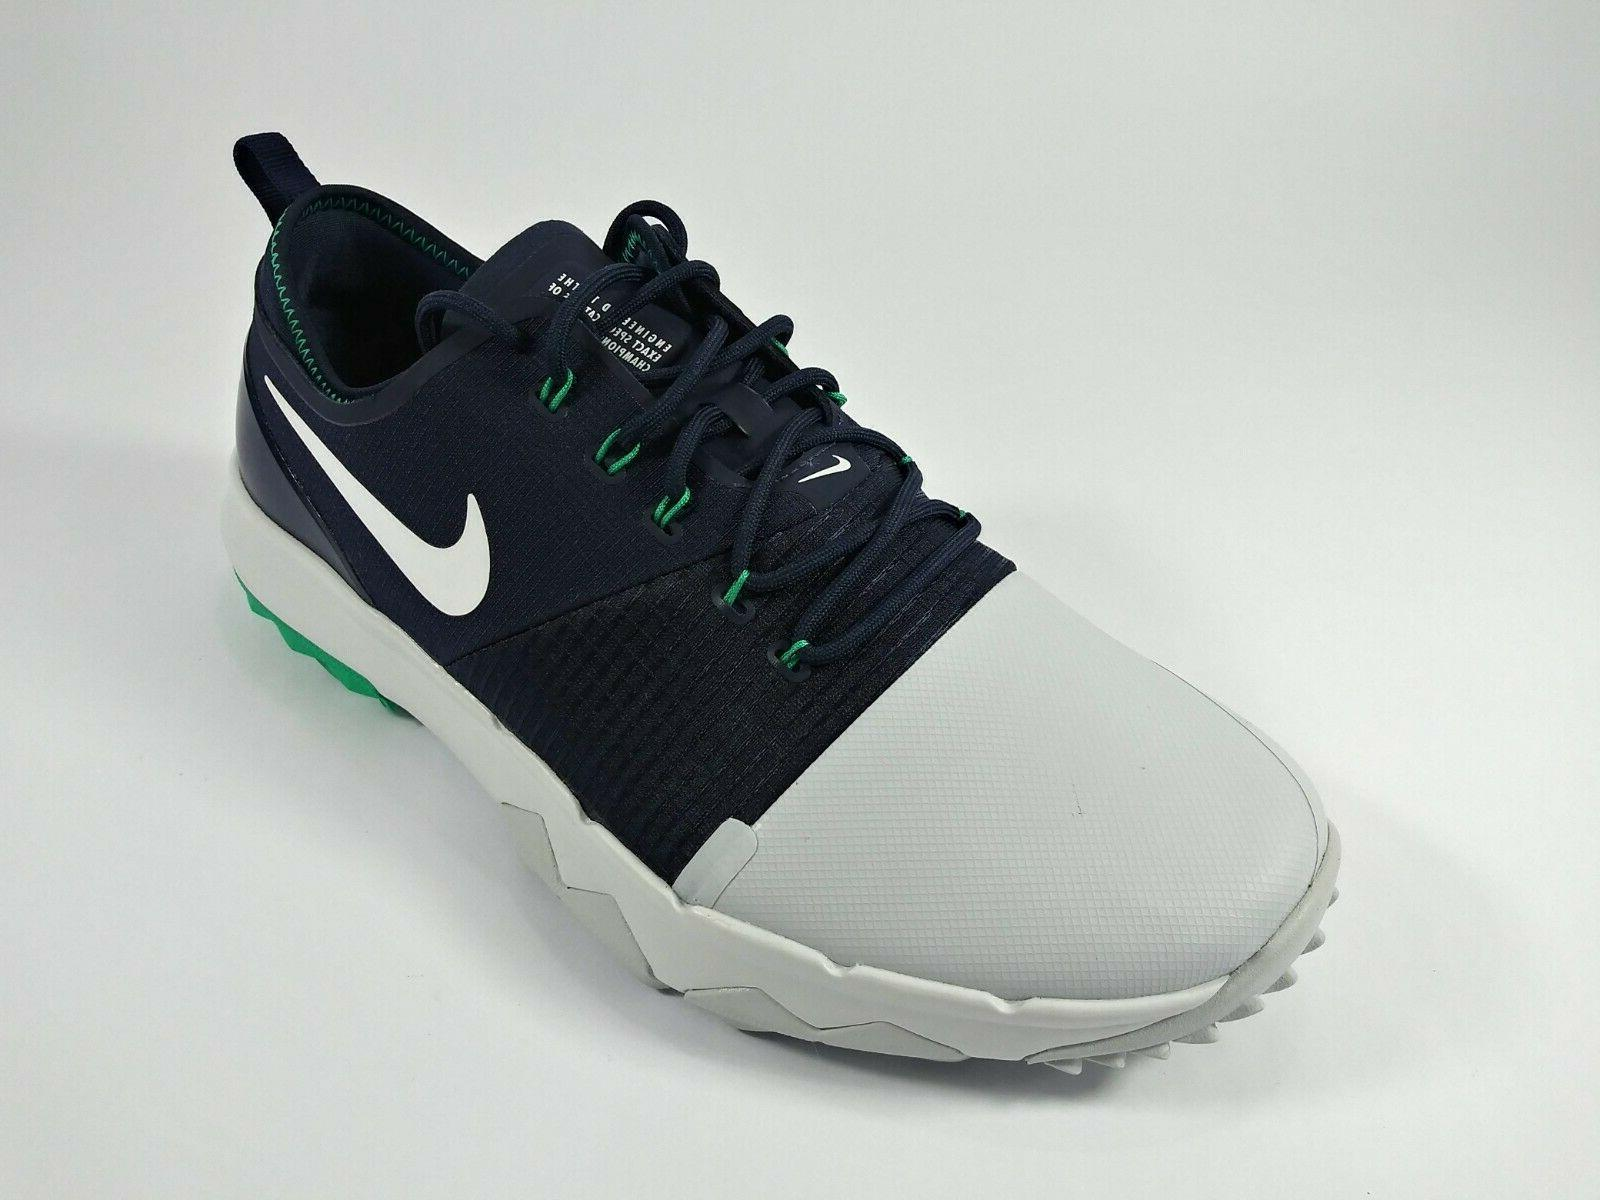 how to change spikes on nike golf shoes